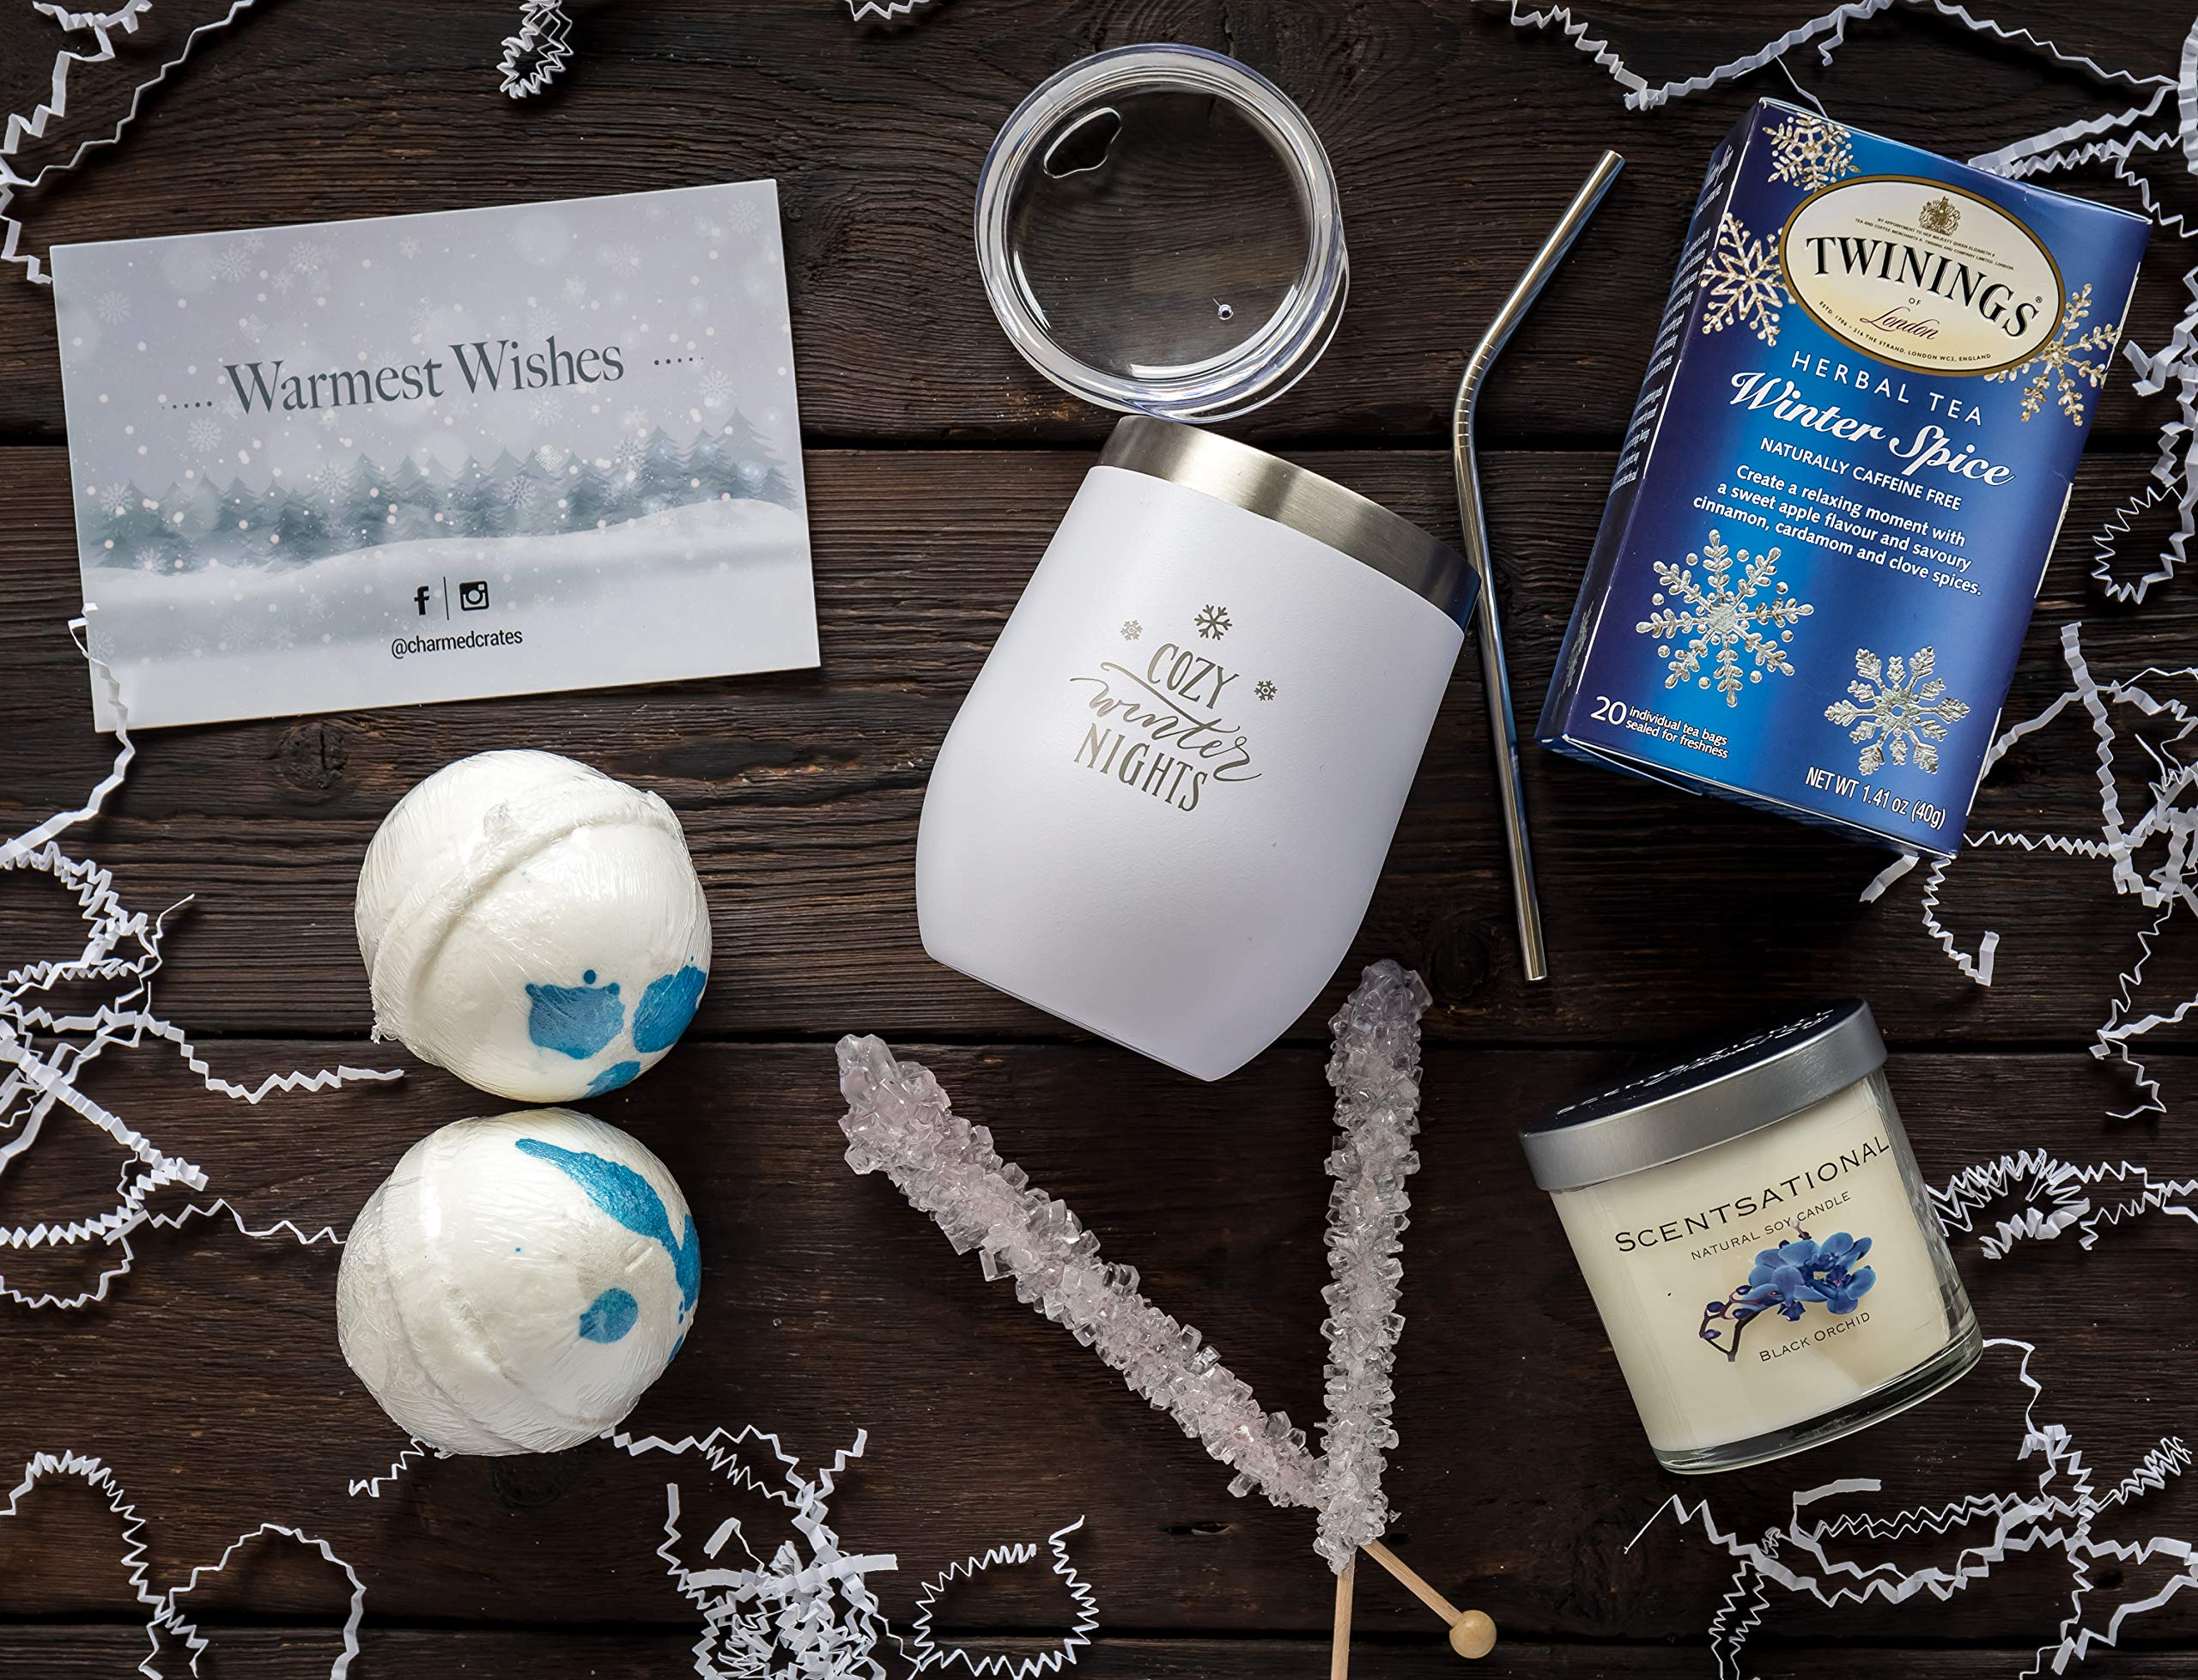 Relaxation Gift Basket for Women: Stainless Steel Wine Tumbler, Scented Candle, Bath Bombs, Tea & Candy Set for Her by Charmed Crates (Image #5)